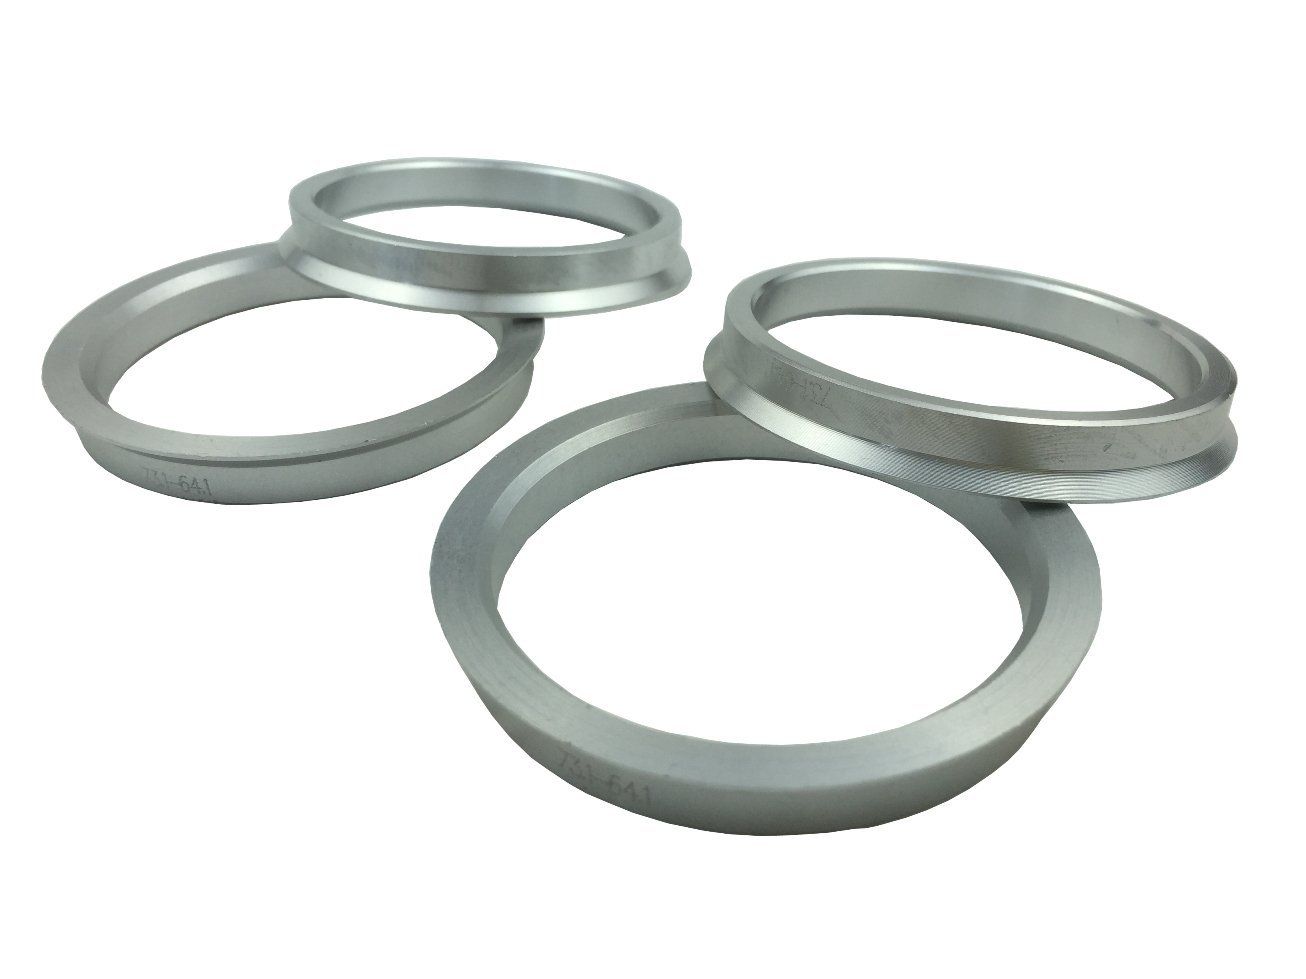 4 Pieces - Hub Centric Rings - 73.1mm OD to 64.1mm ID - Aluminum Hubrings JianDa